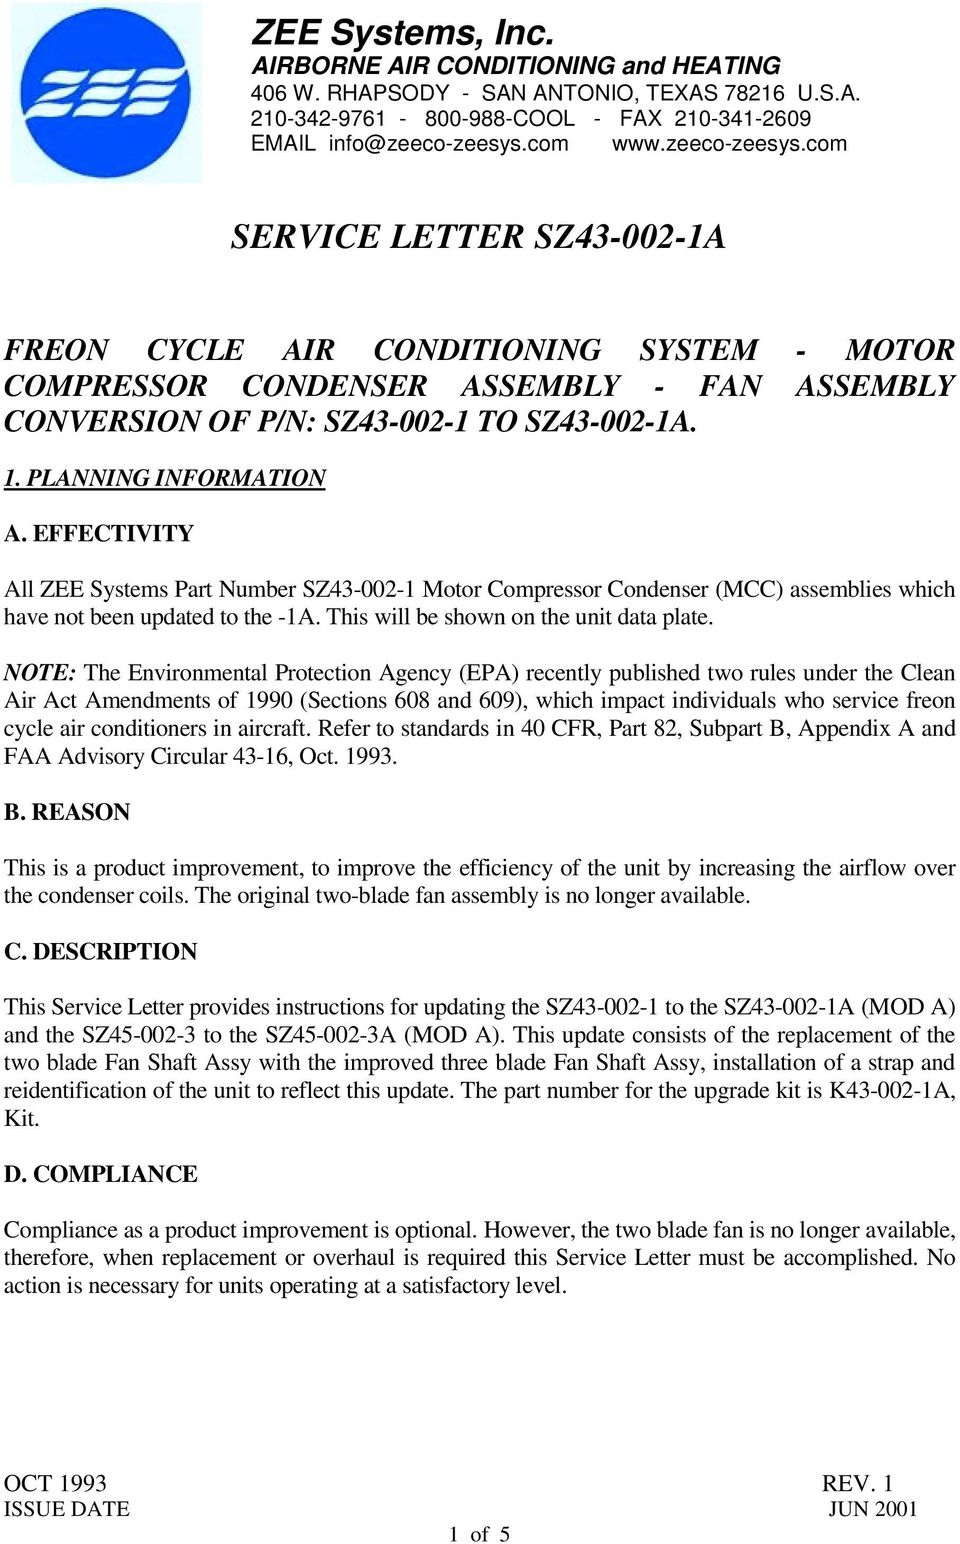 Service Letter Sz A Pdf Electric Fan Conversion For Suburban Note The Environmental Protection Agency Epa Recently Published Two Rules Under Clean